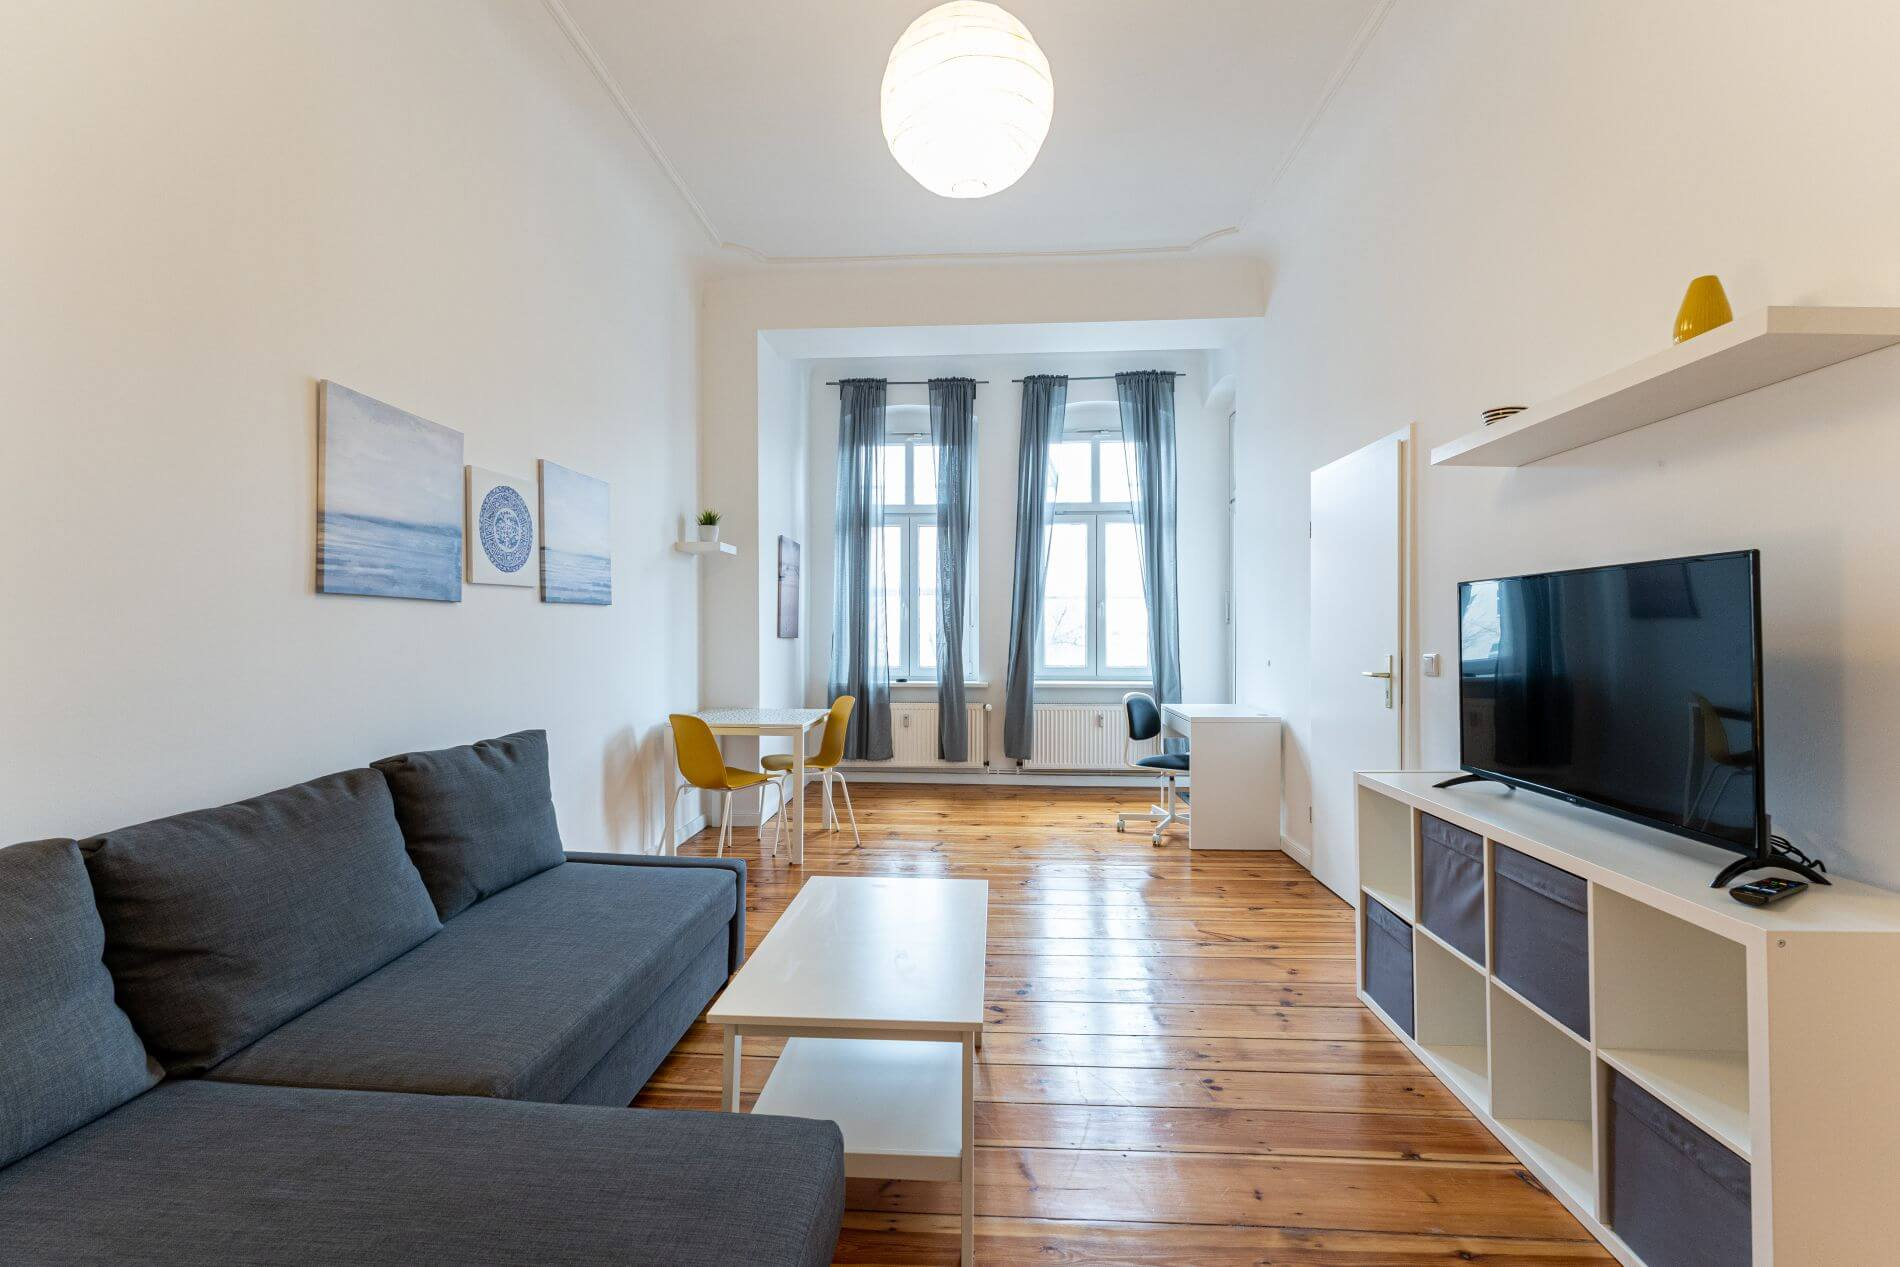 Serviced apartment for rent in Prenzlauer Berg, Berlin for long term stays